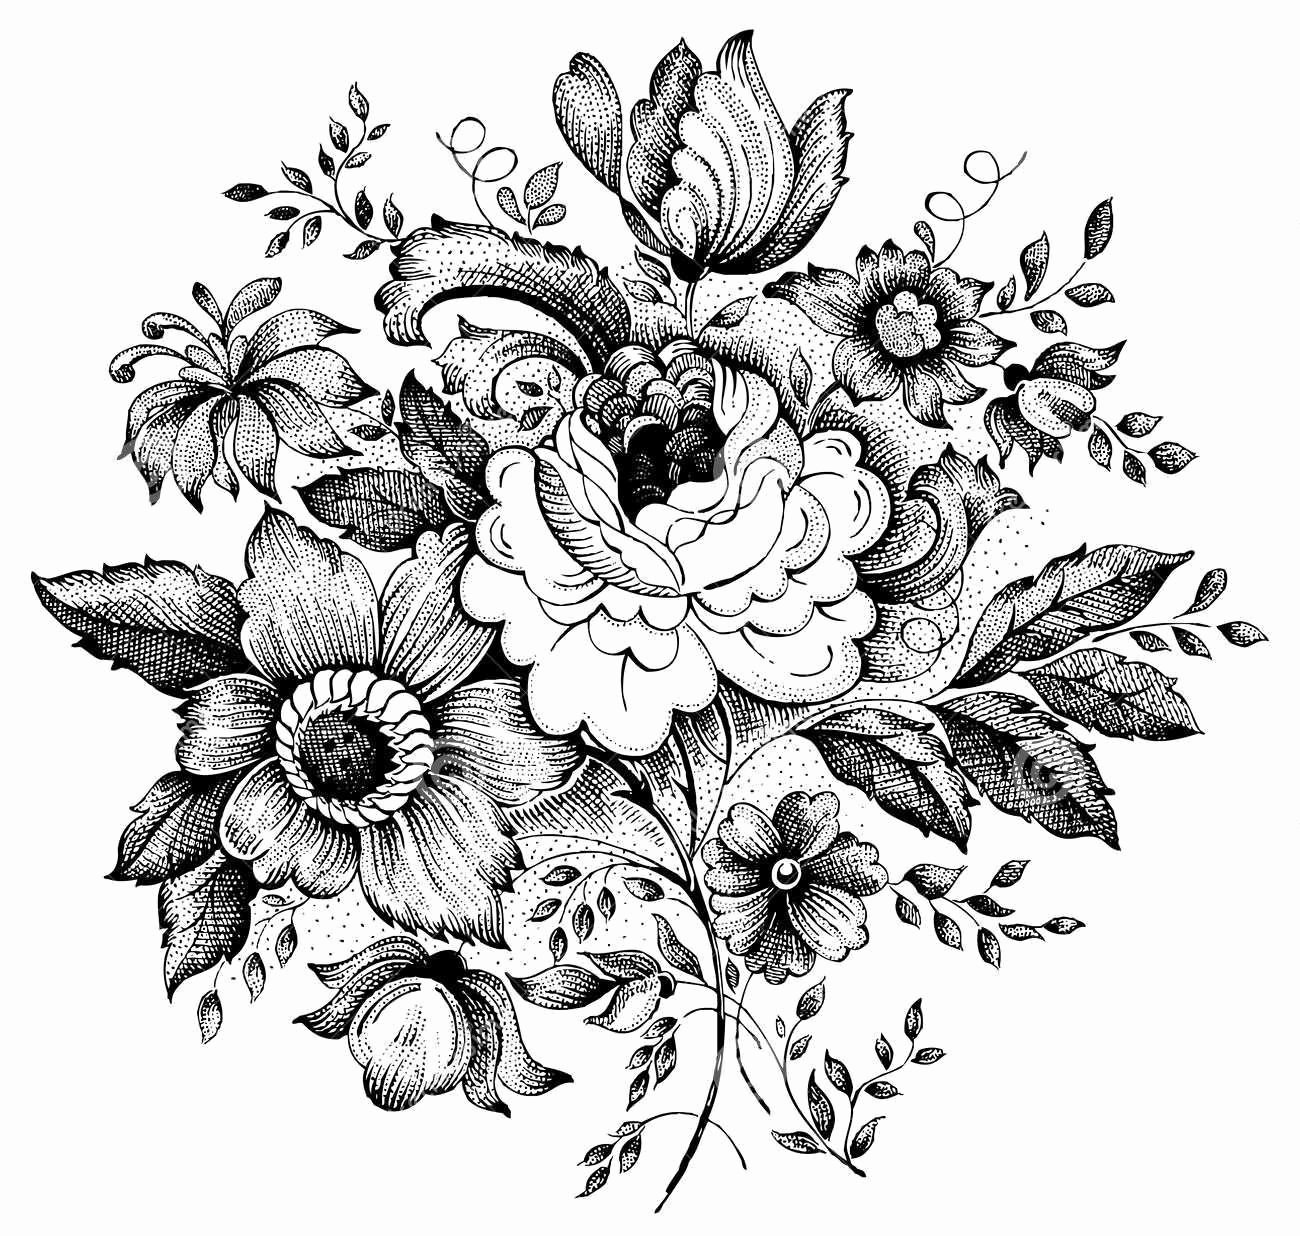 Black and White Flower Drawing Lovely 15 Black and White Floral Tattoo Designs